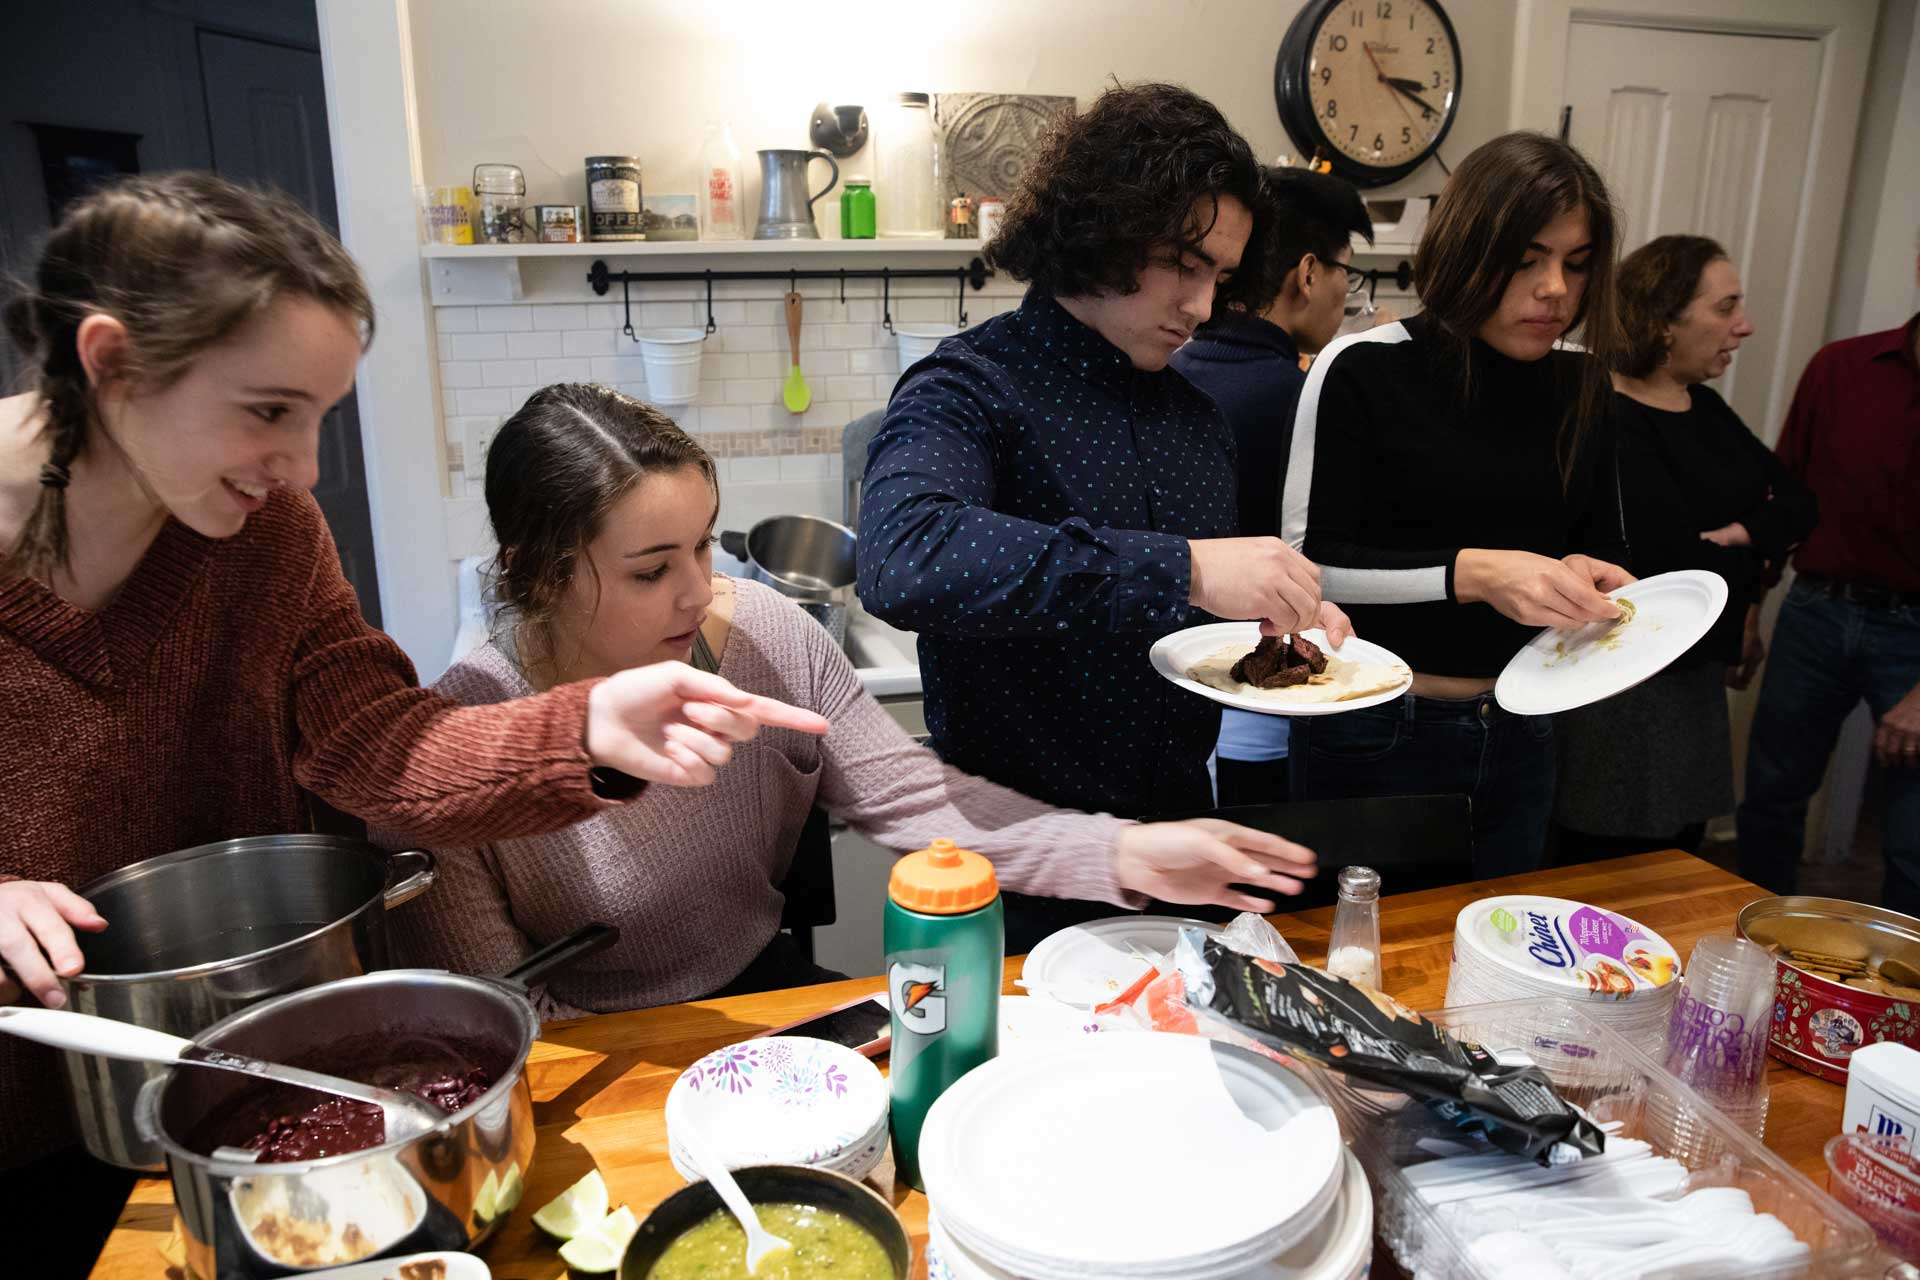 College students eating together in a kitchen